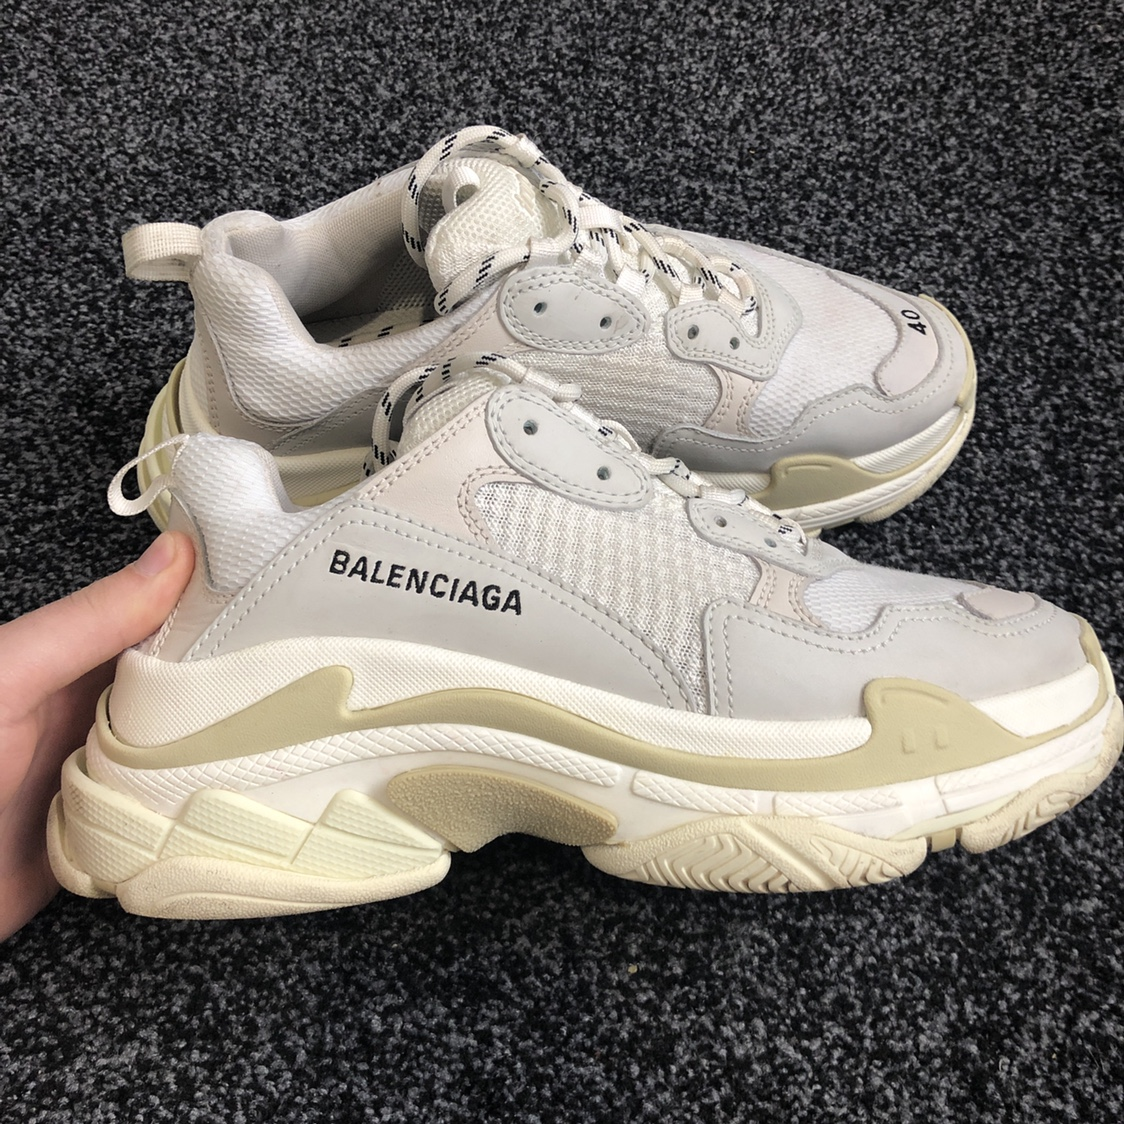 9d0ebf3fdba balenciaga Triple S. Size 40 fit 42 Only shoes No... - Depop